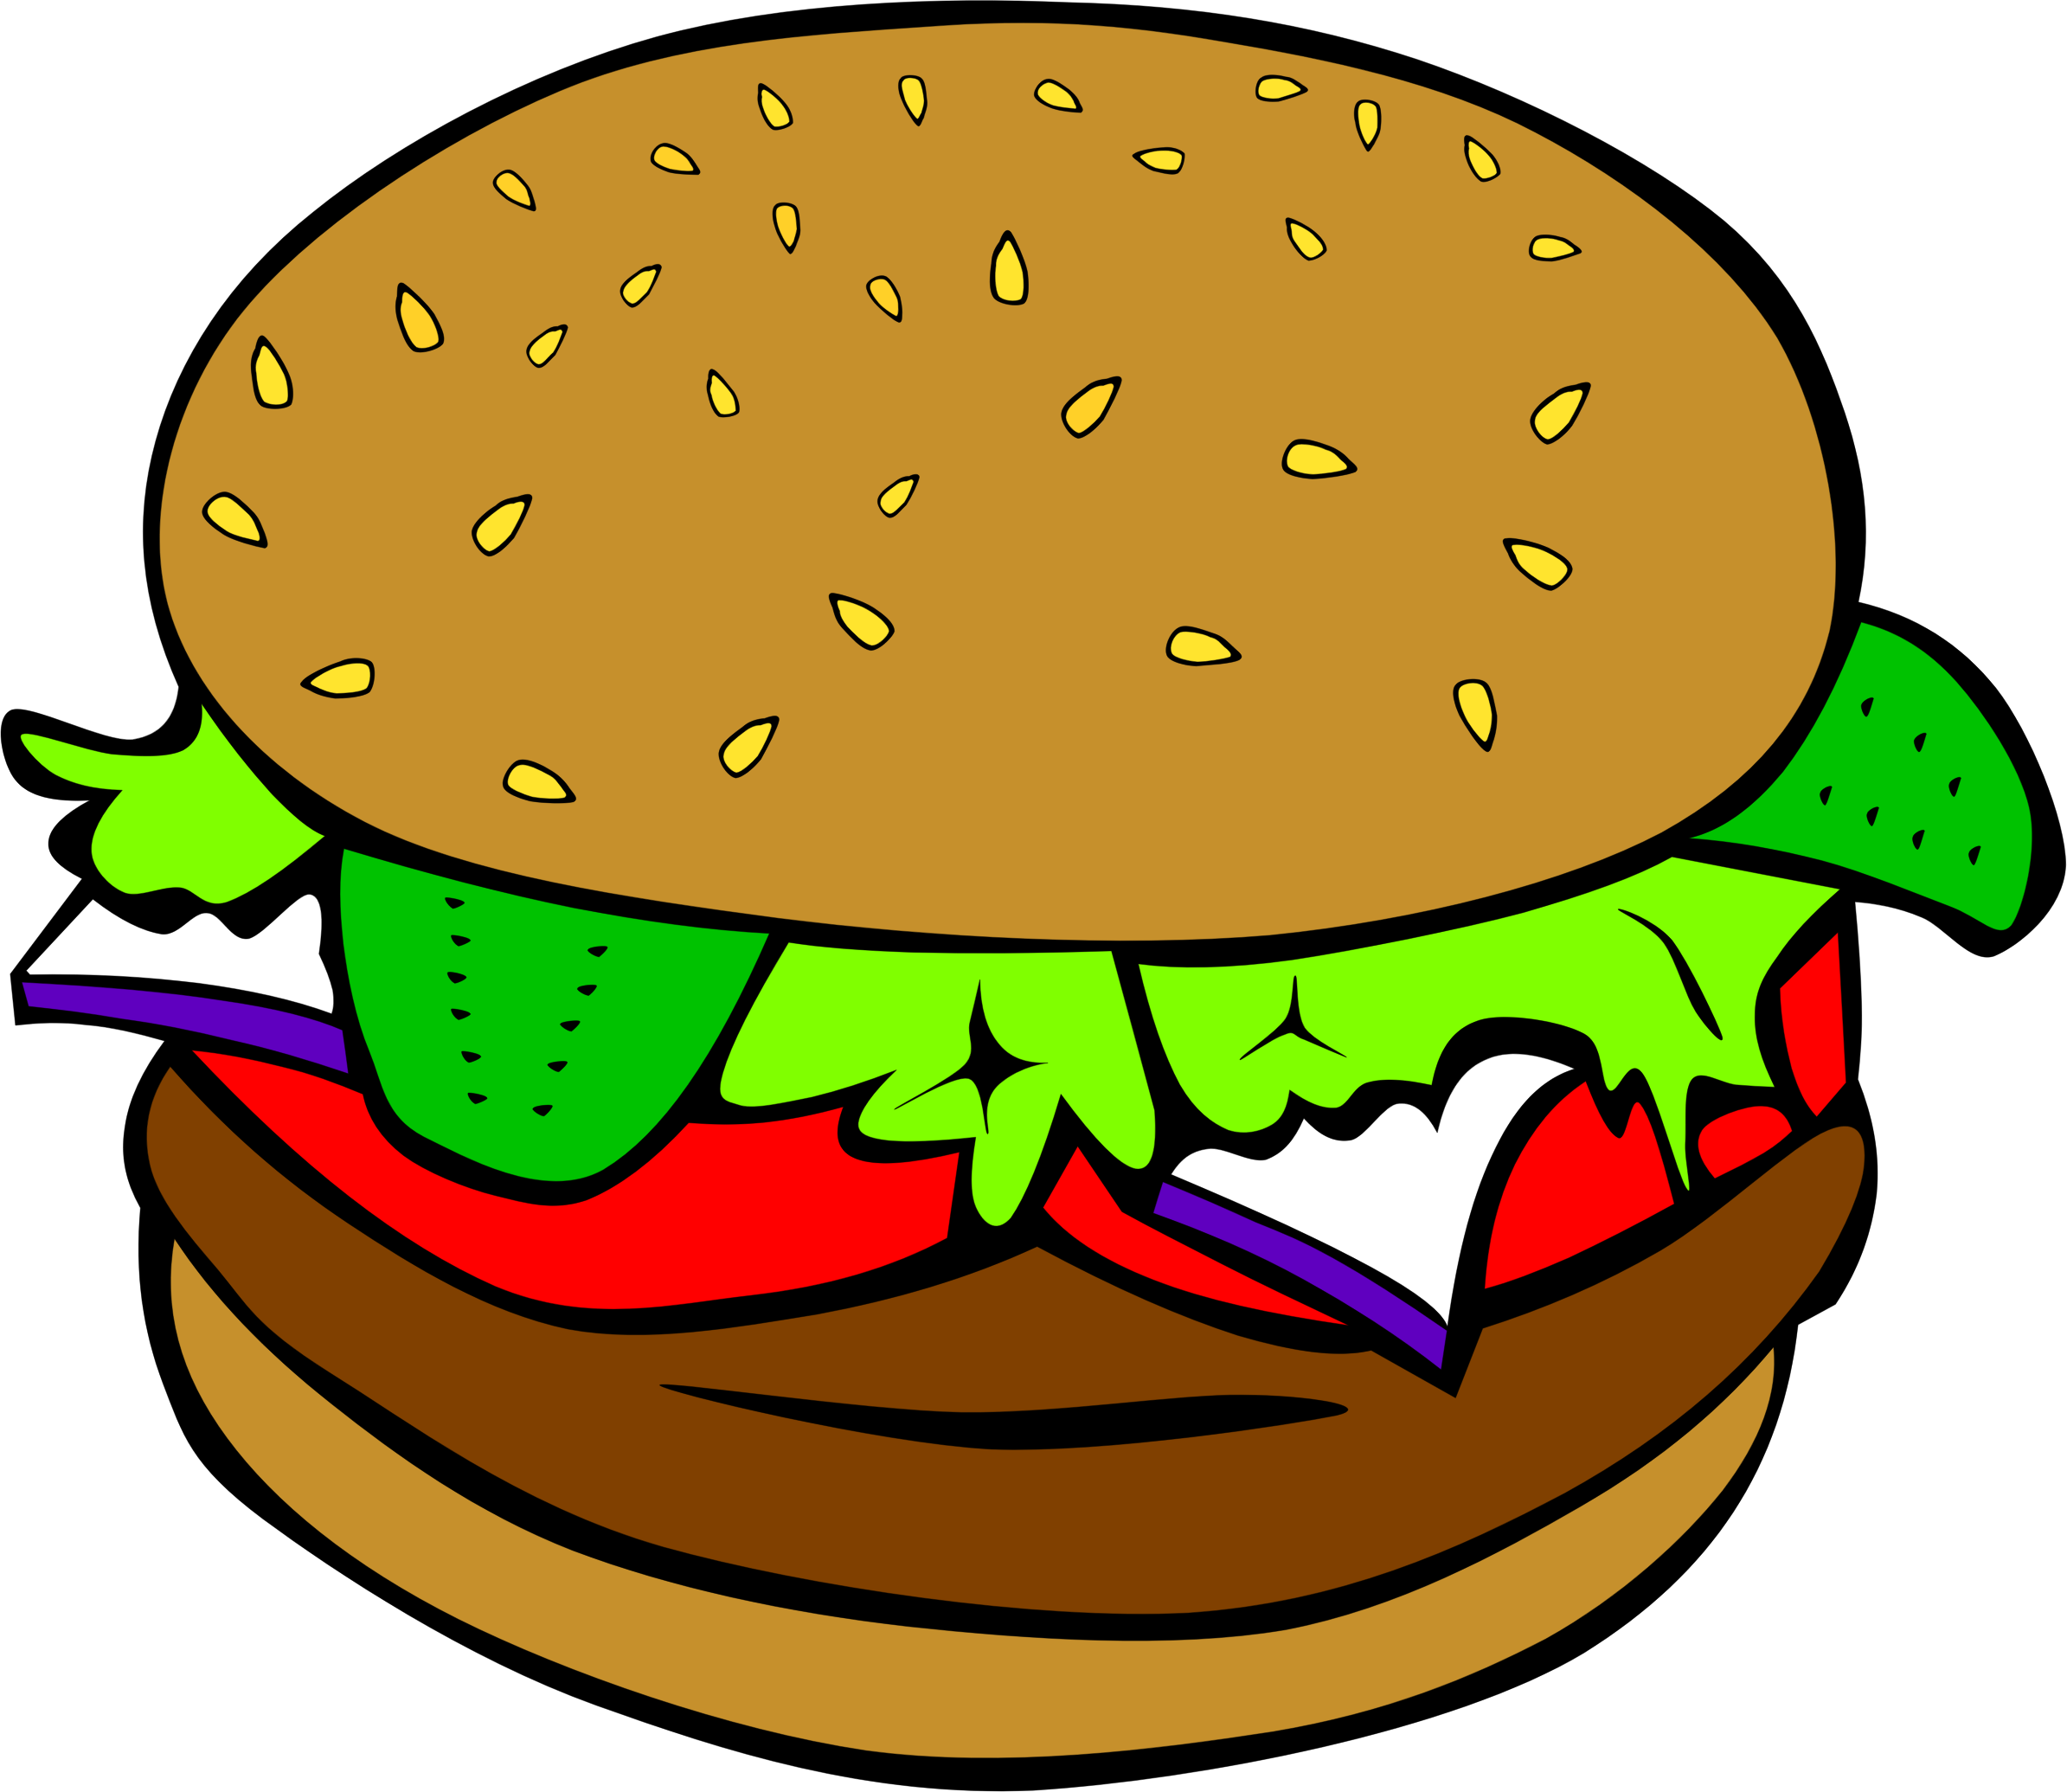 Burger clipart diner food pencil and in color burger png.